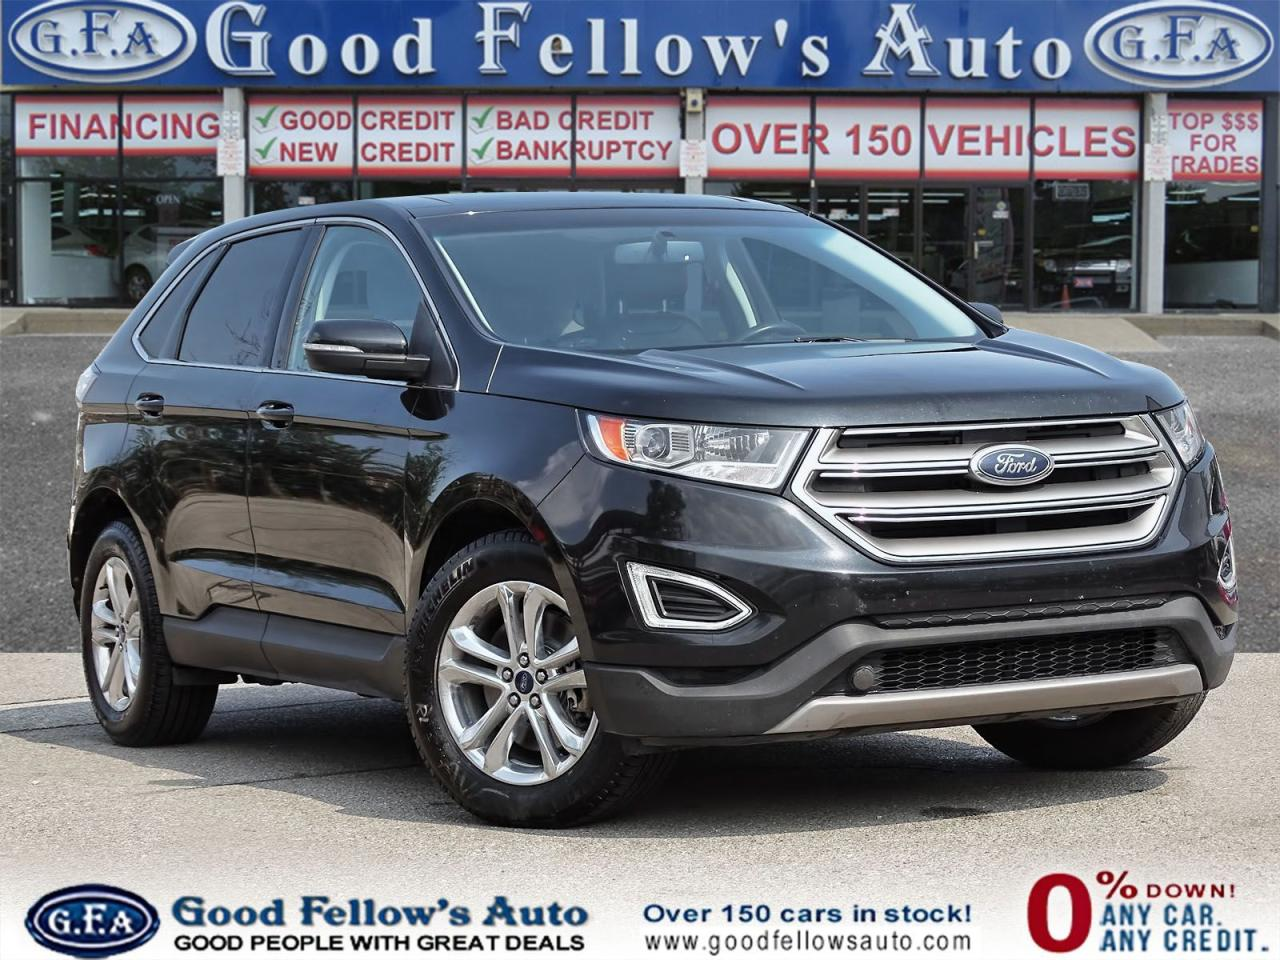 Used 2015 Ford Edge Sel Model Awd 4cyl Power Sunroof Navigation